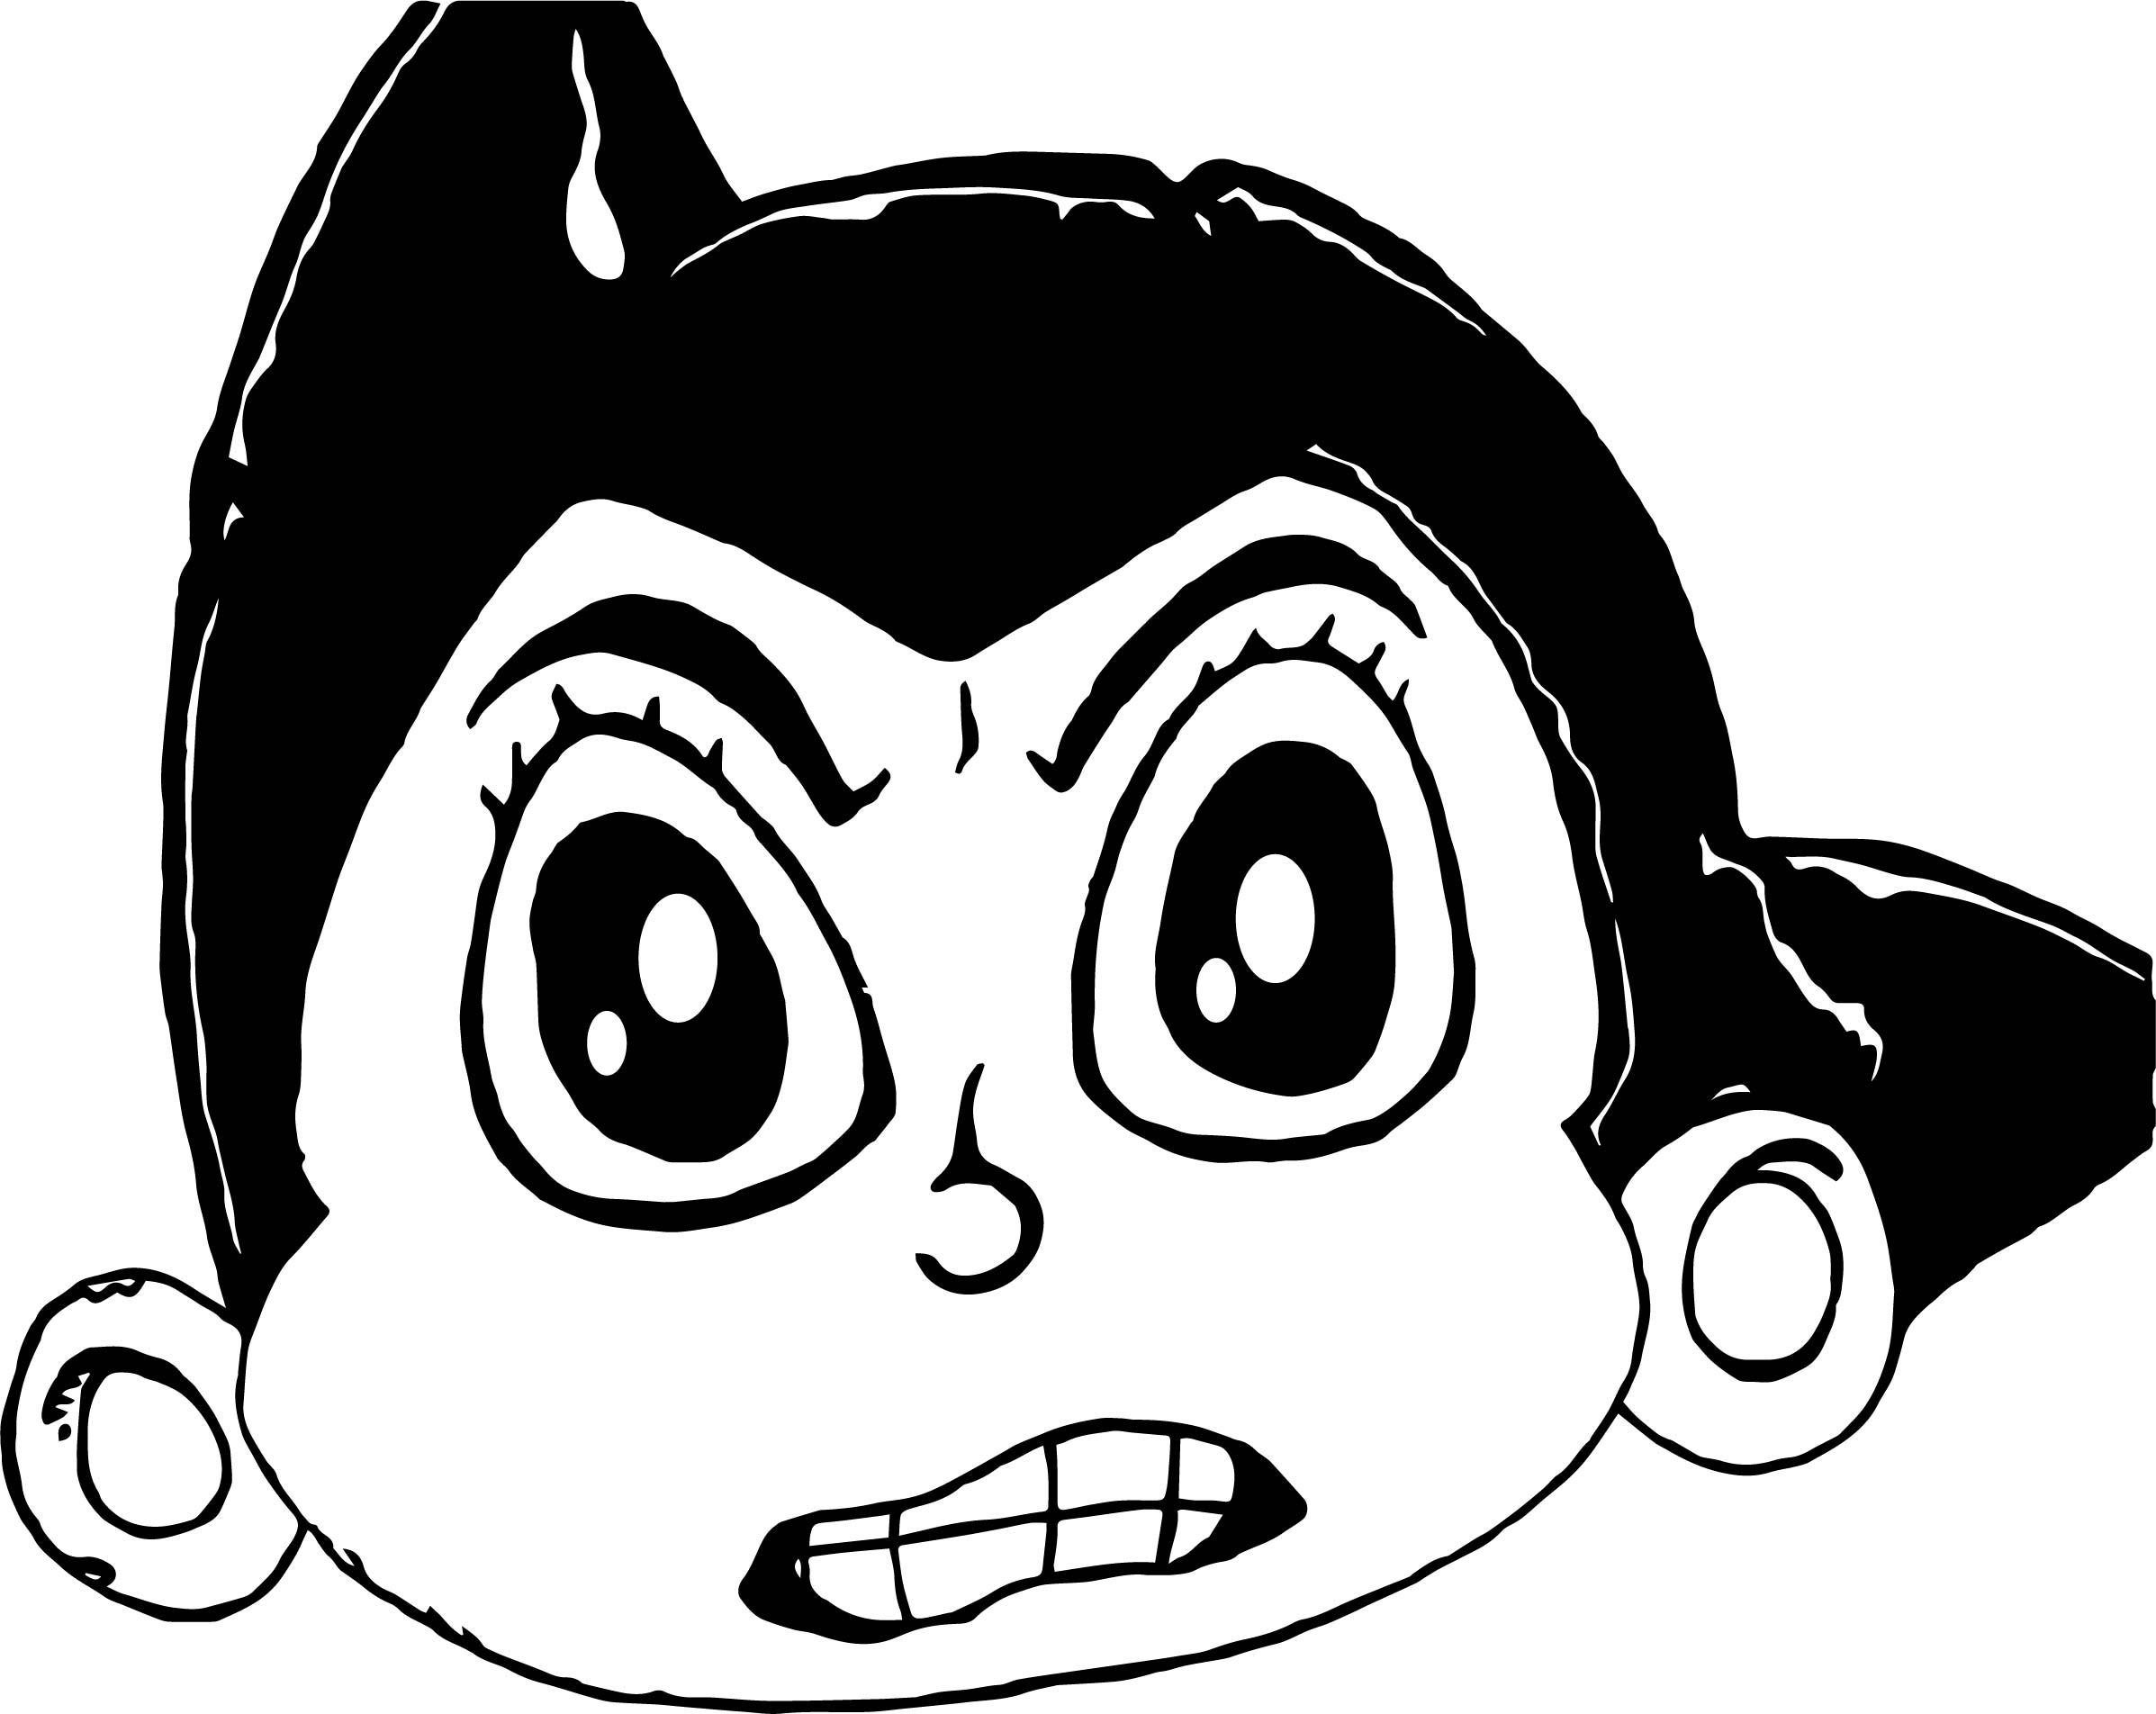 Line Drawing Cartoon Face : Angry face cartoon drawing at getdrawings.com free for personal